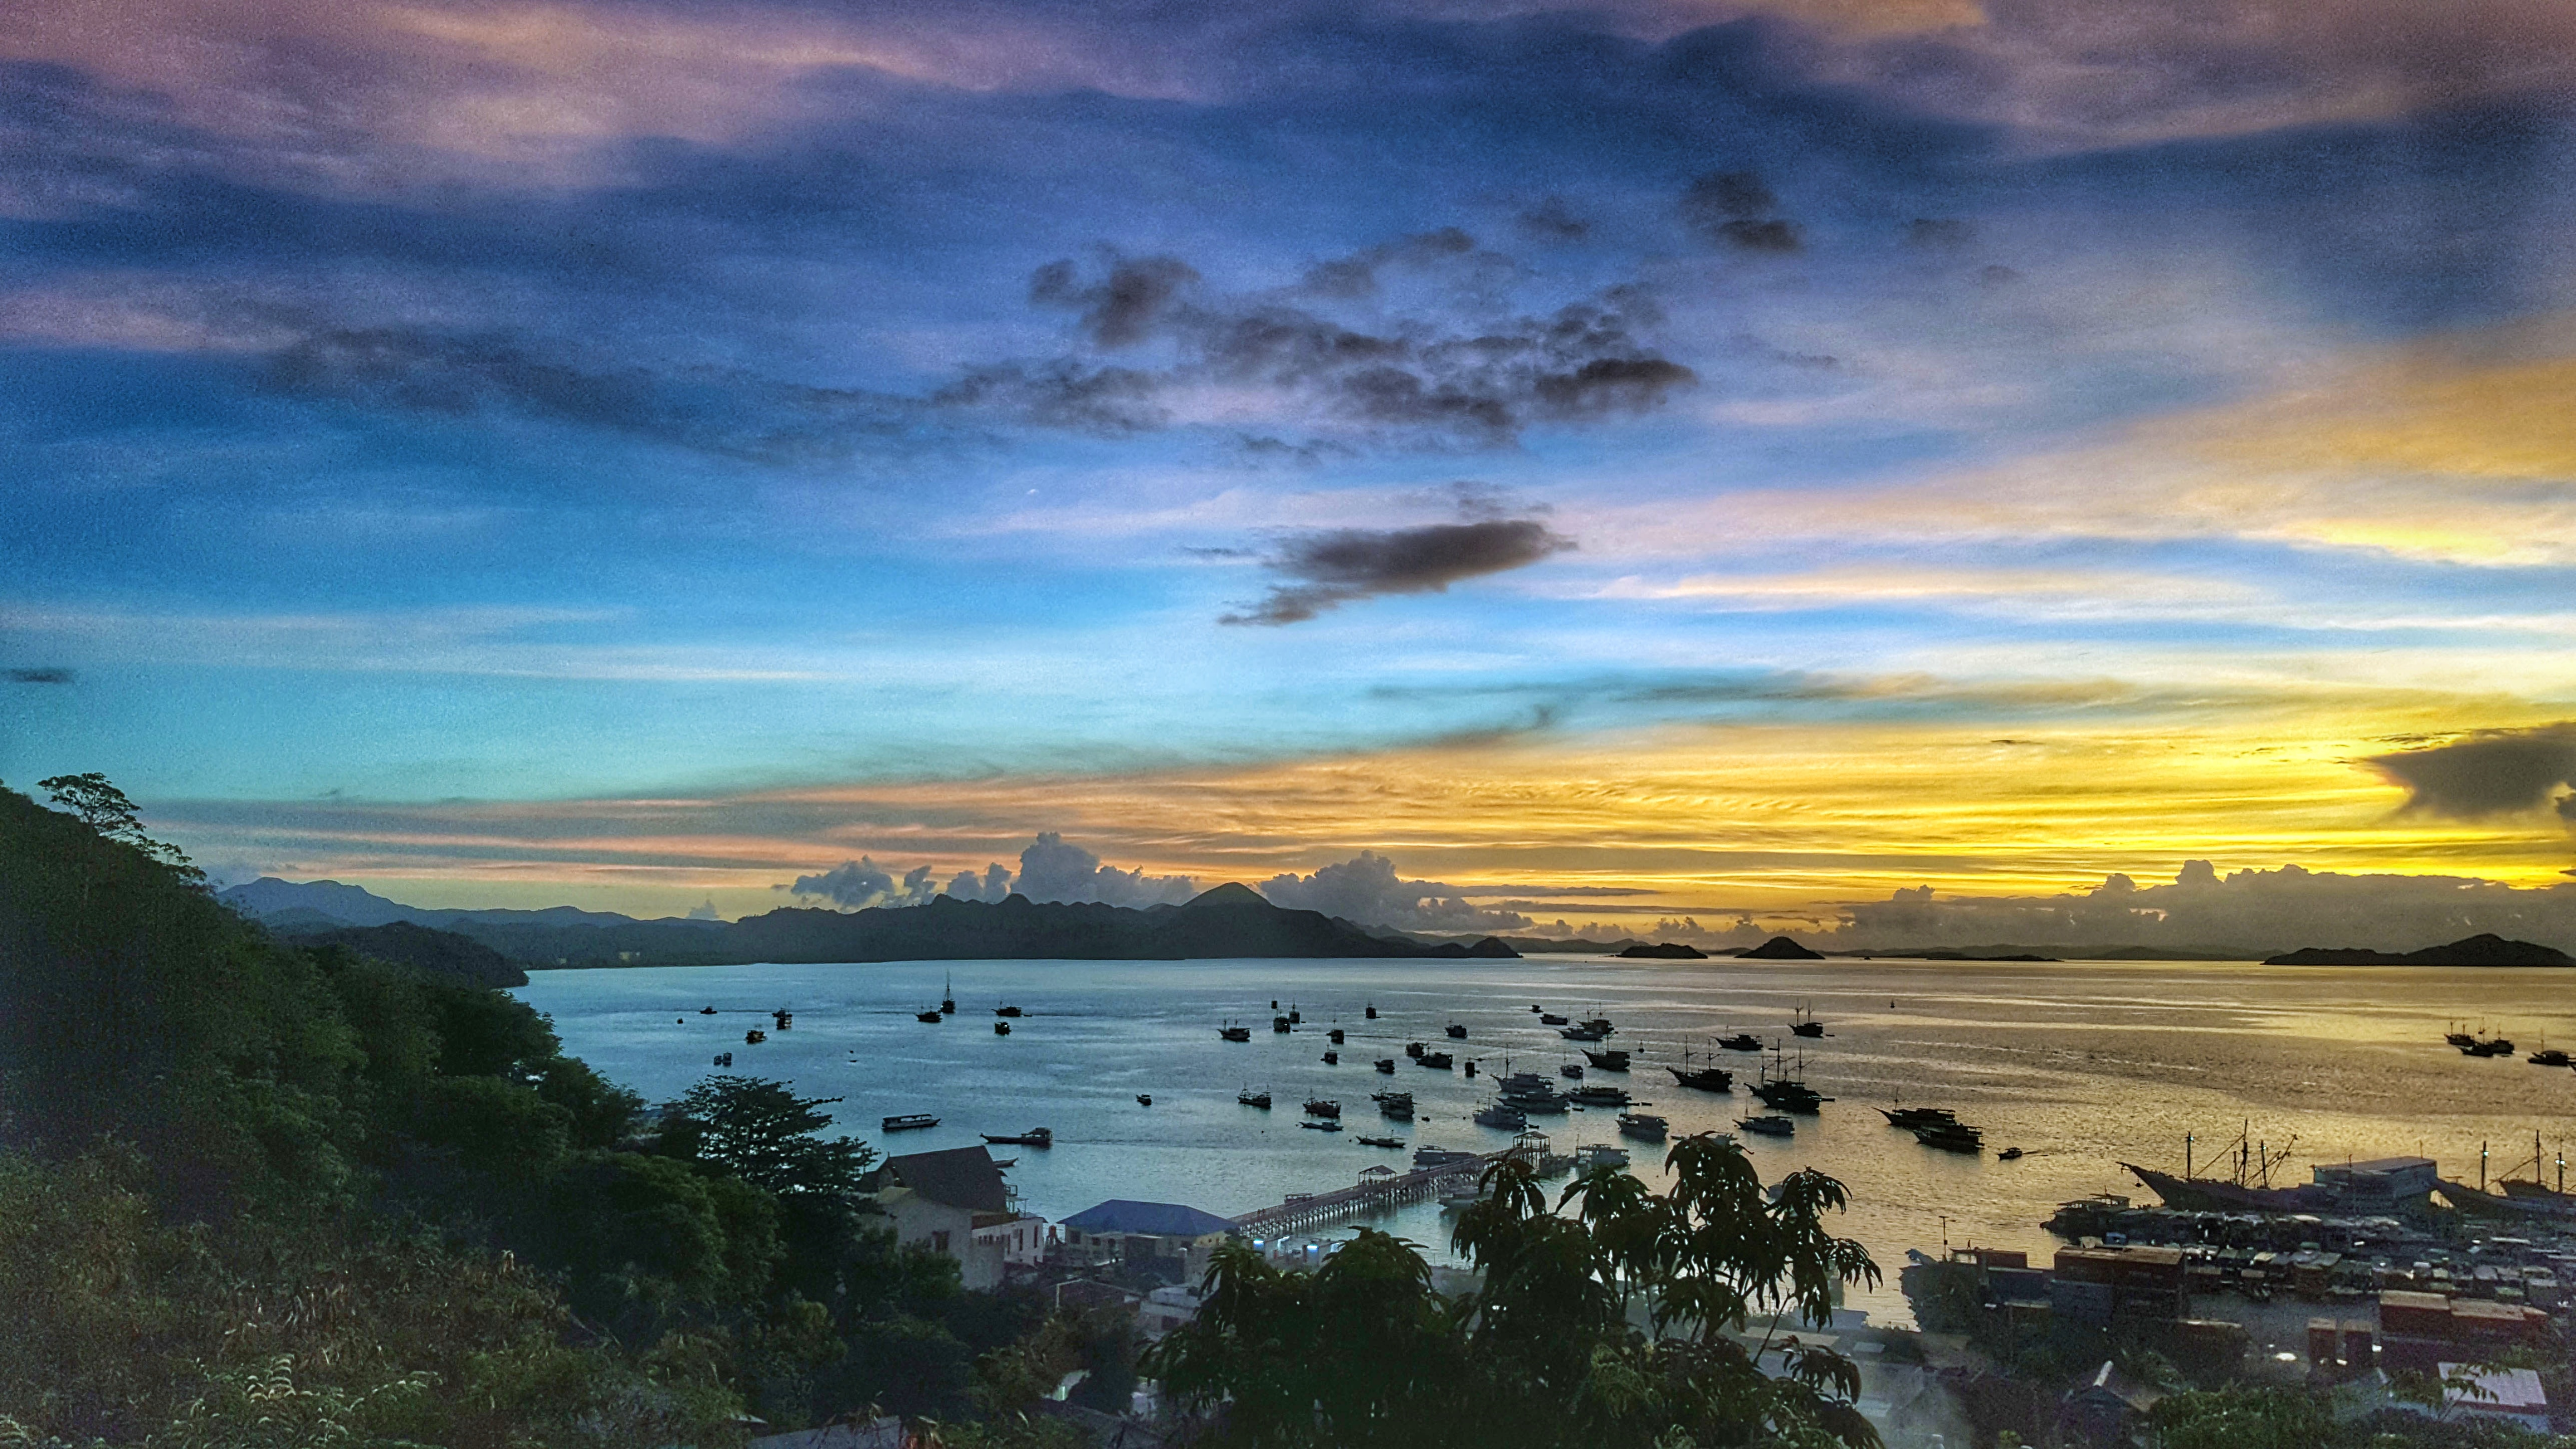 Sunset over Labuan Bajo, Flores, Indonesia